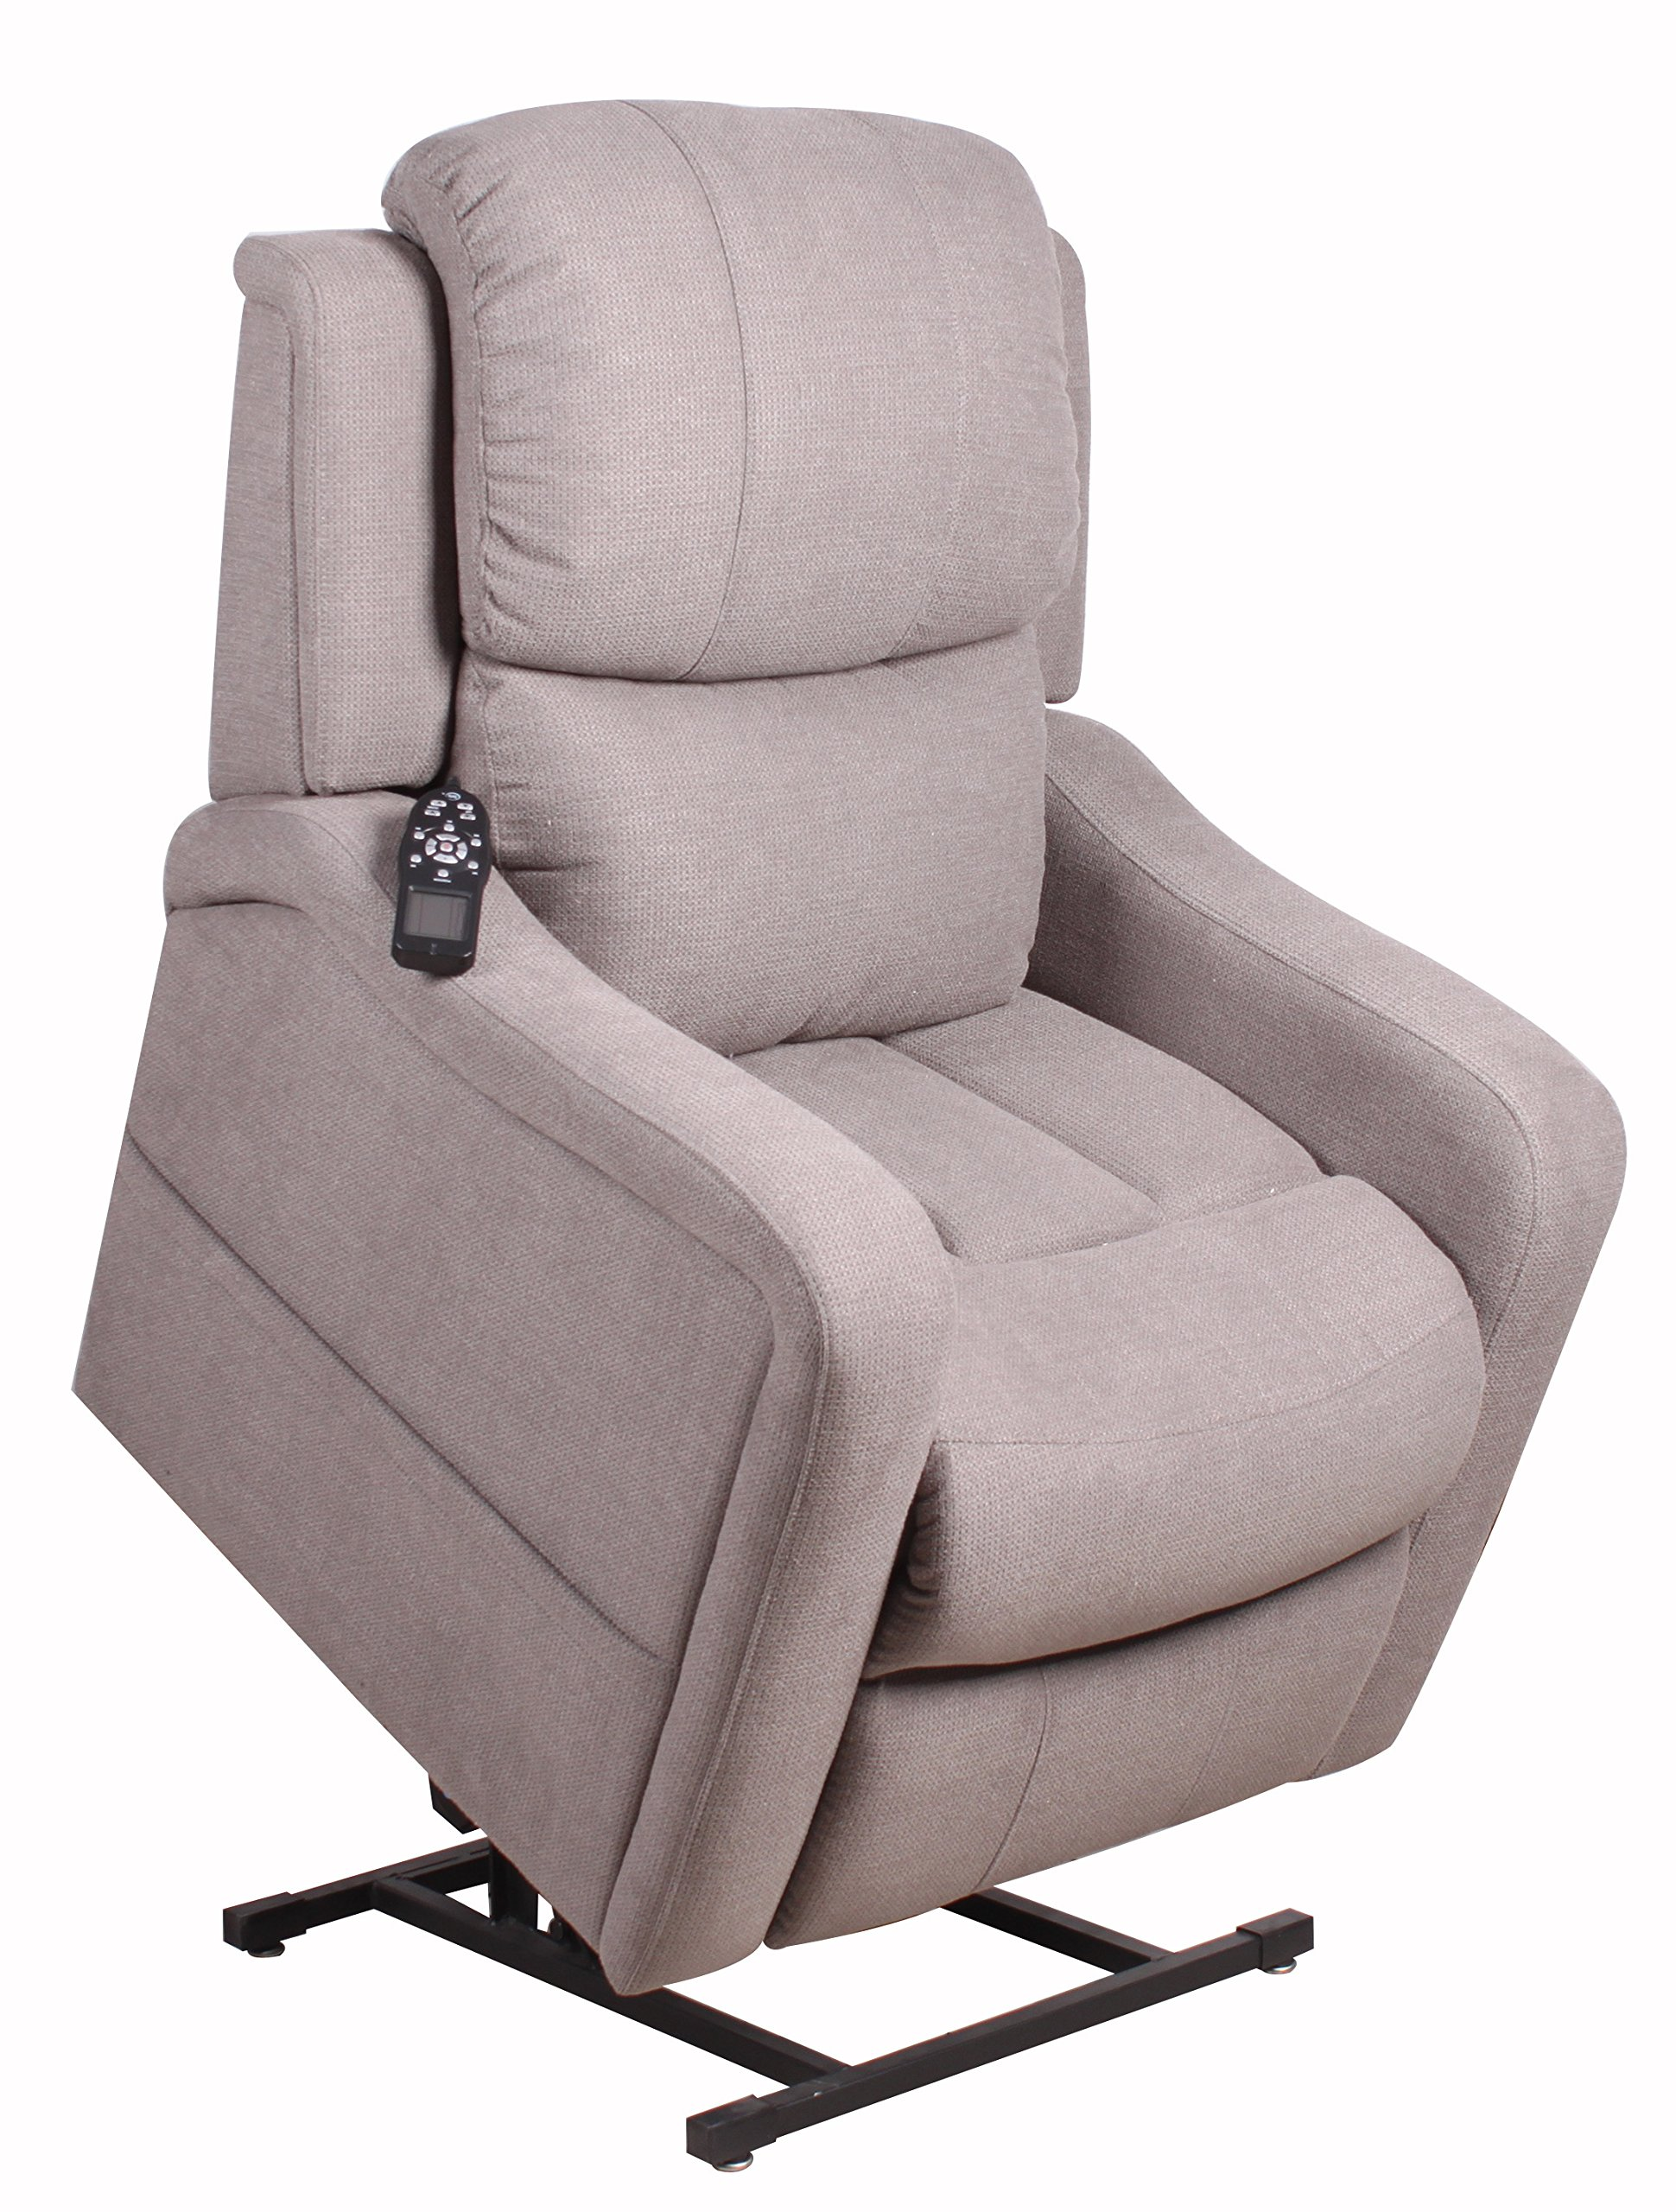 Therapedic CARSON Lift Chair, Smoke, with Articulating Headrest